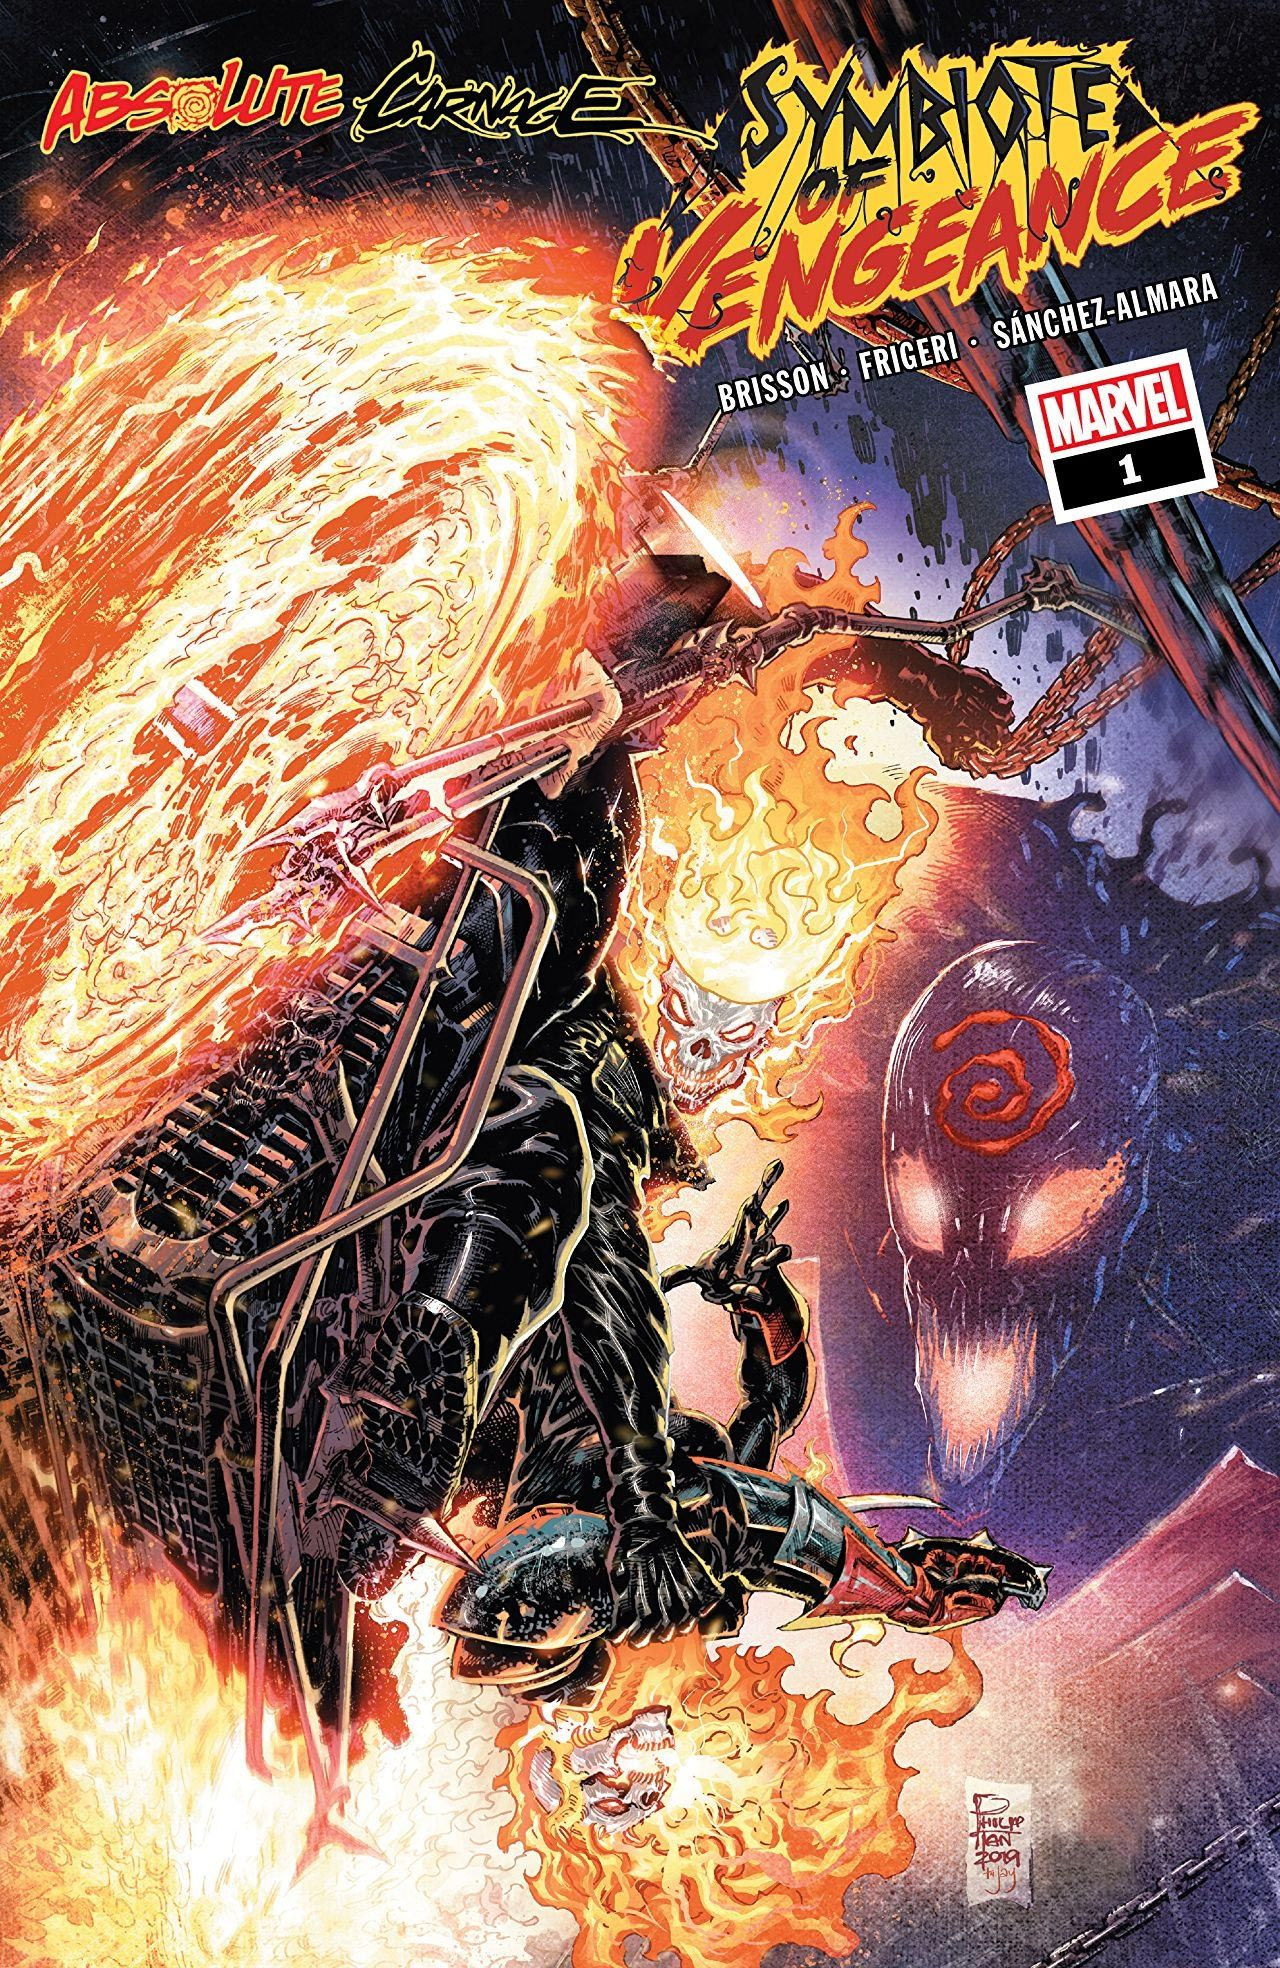 Absolute Carnage: Symbiote of Vengeance #1 Review | CBR